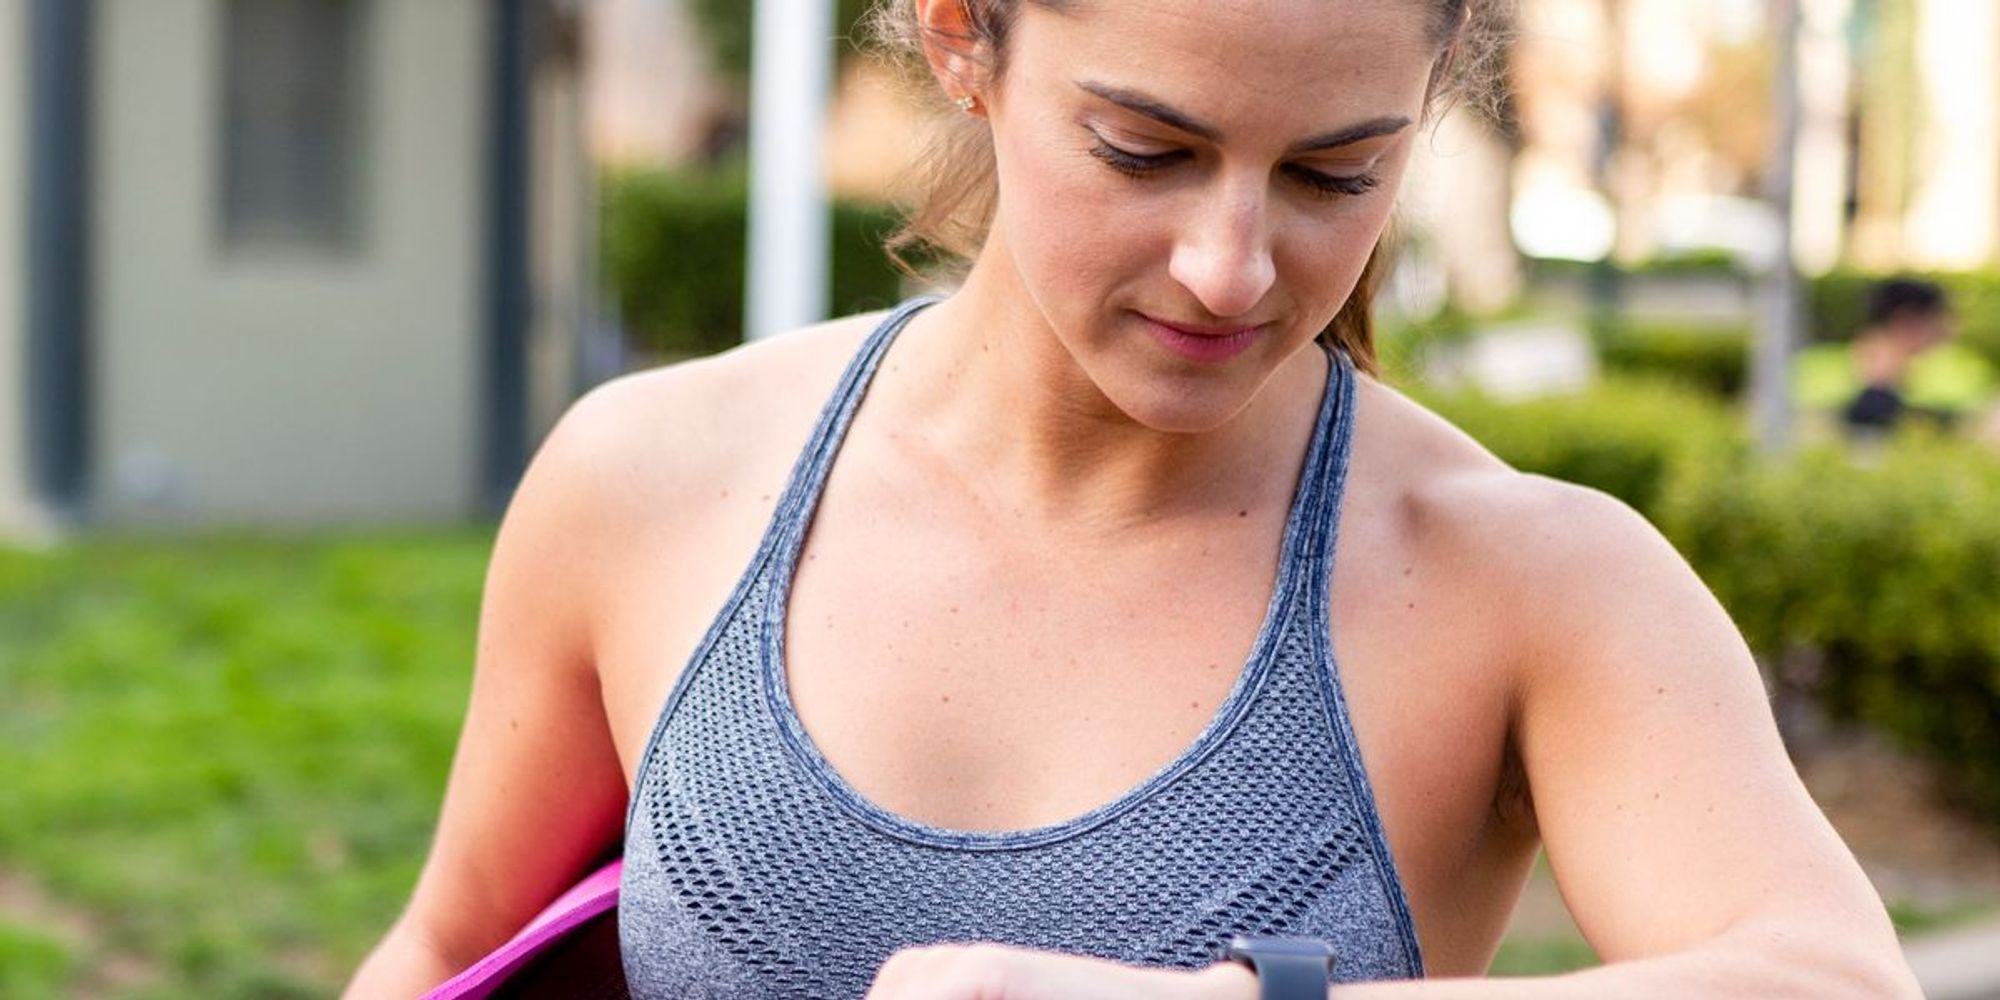 15 ways to track your health